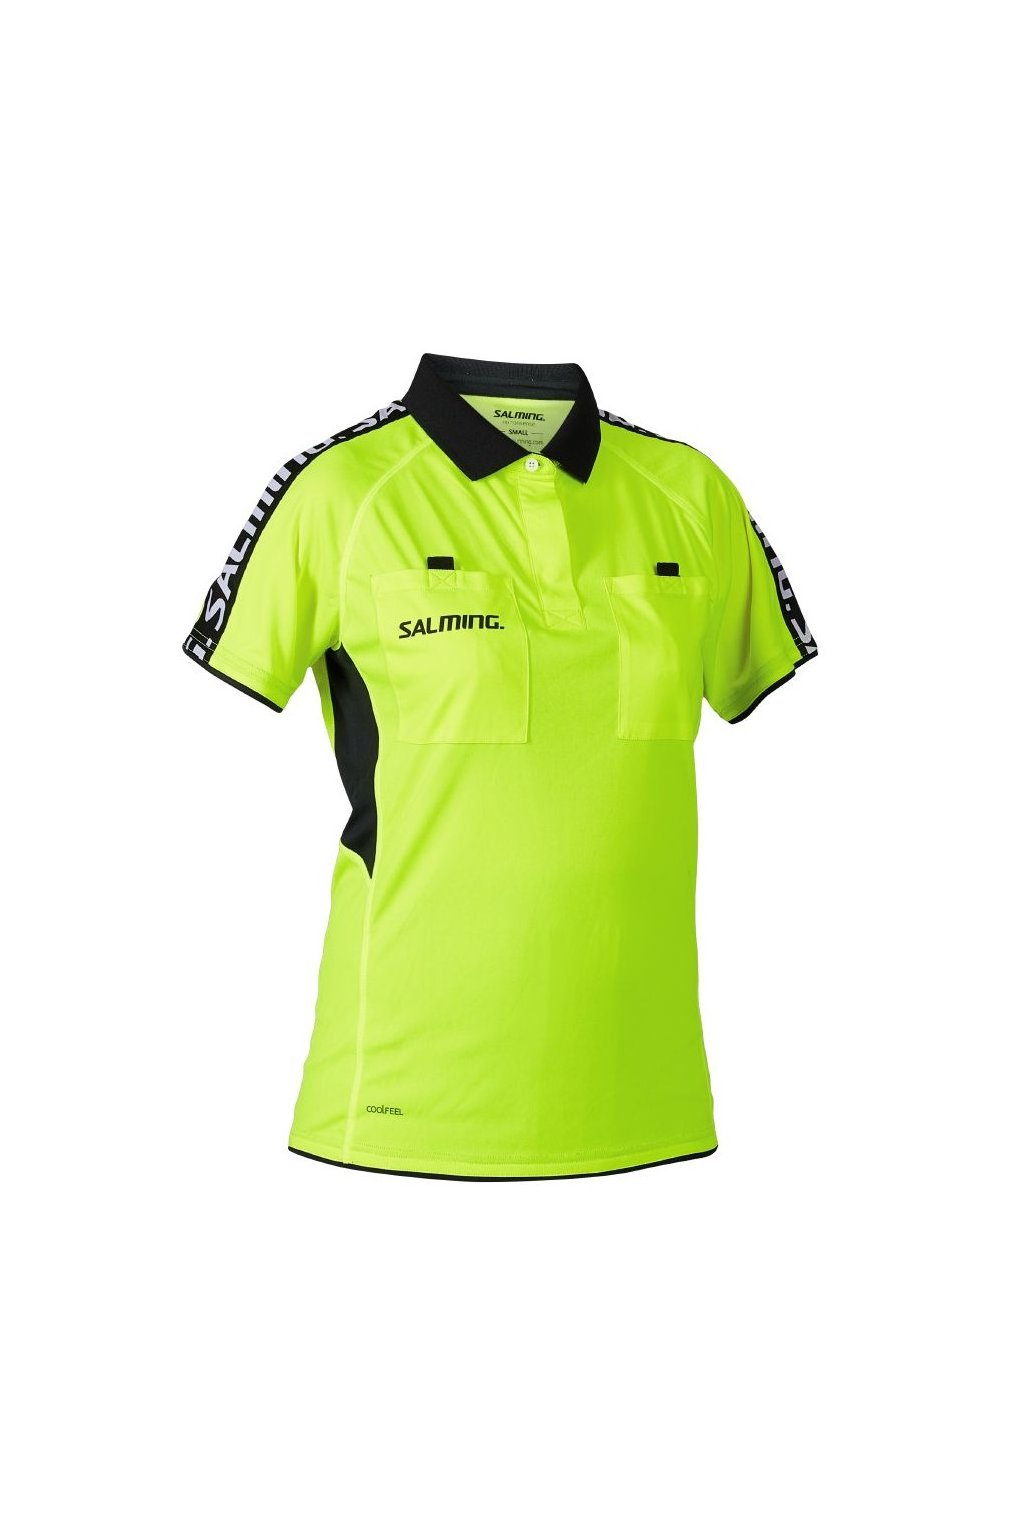 salming referee polo women (1)